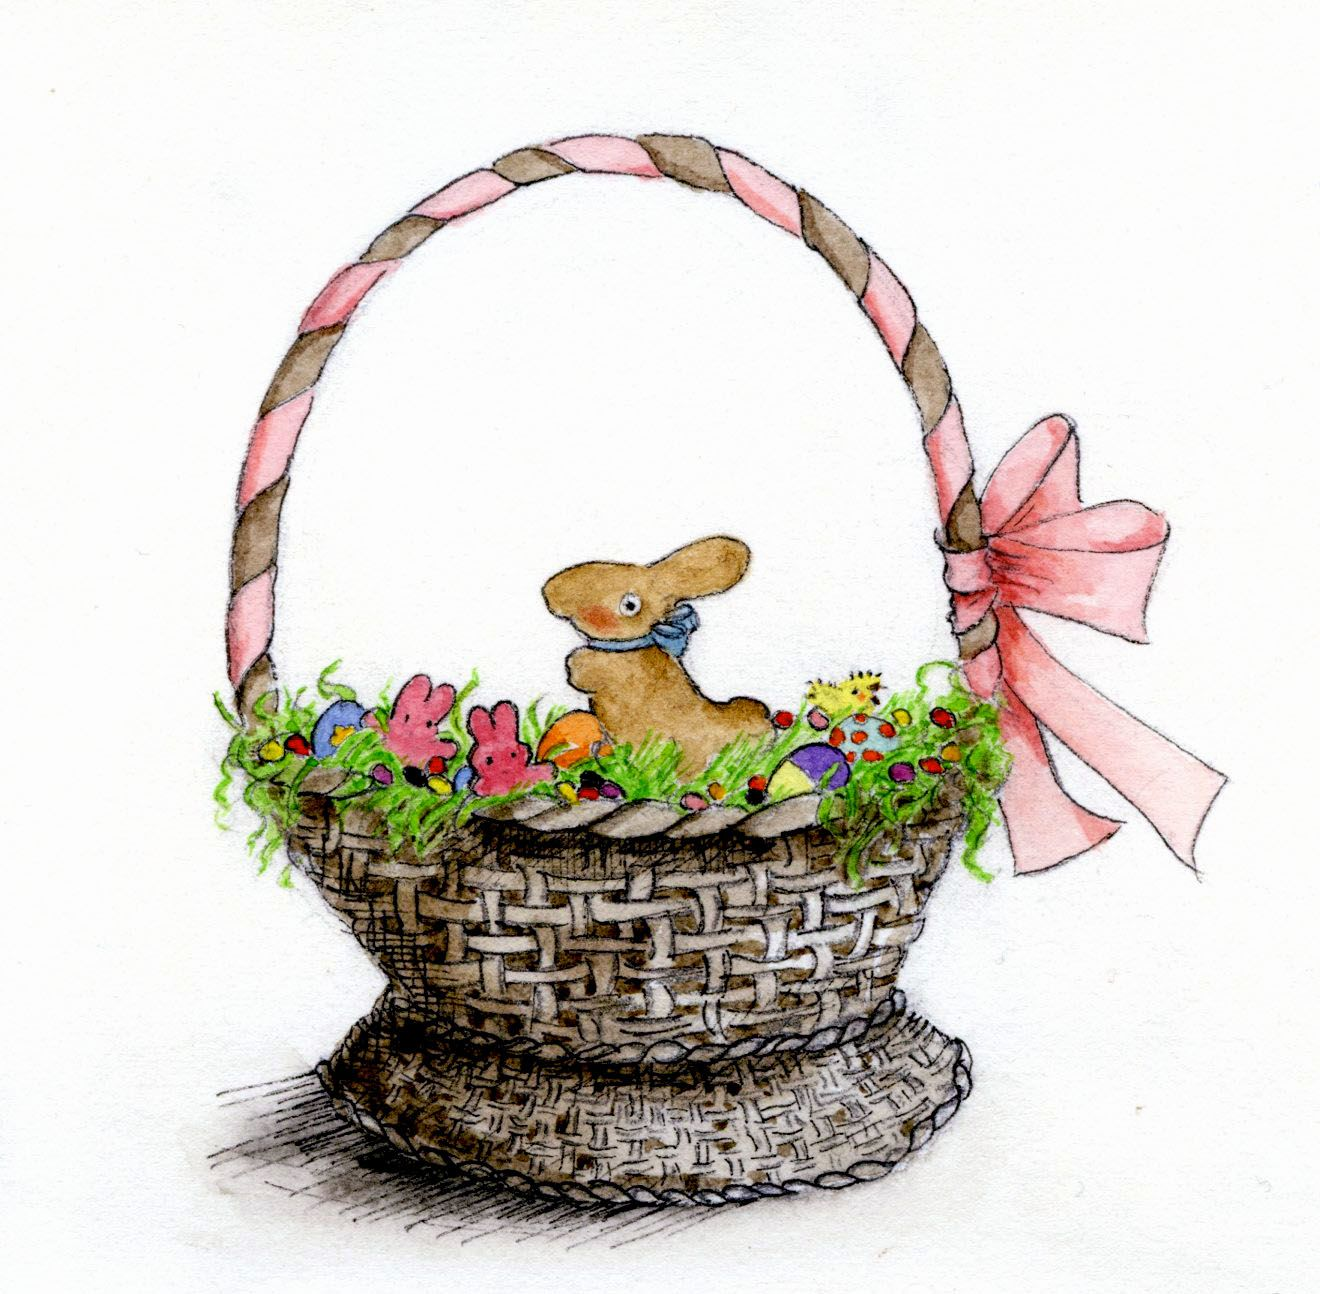 1320x1294 How To Draw And Paint A Treat Filled Easter Basket Filled Easter